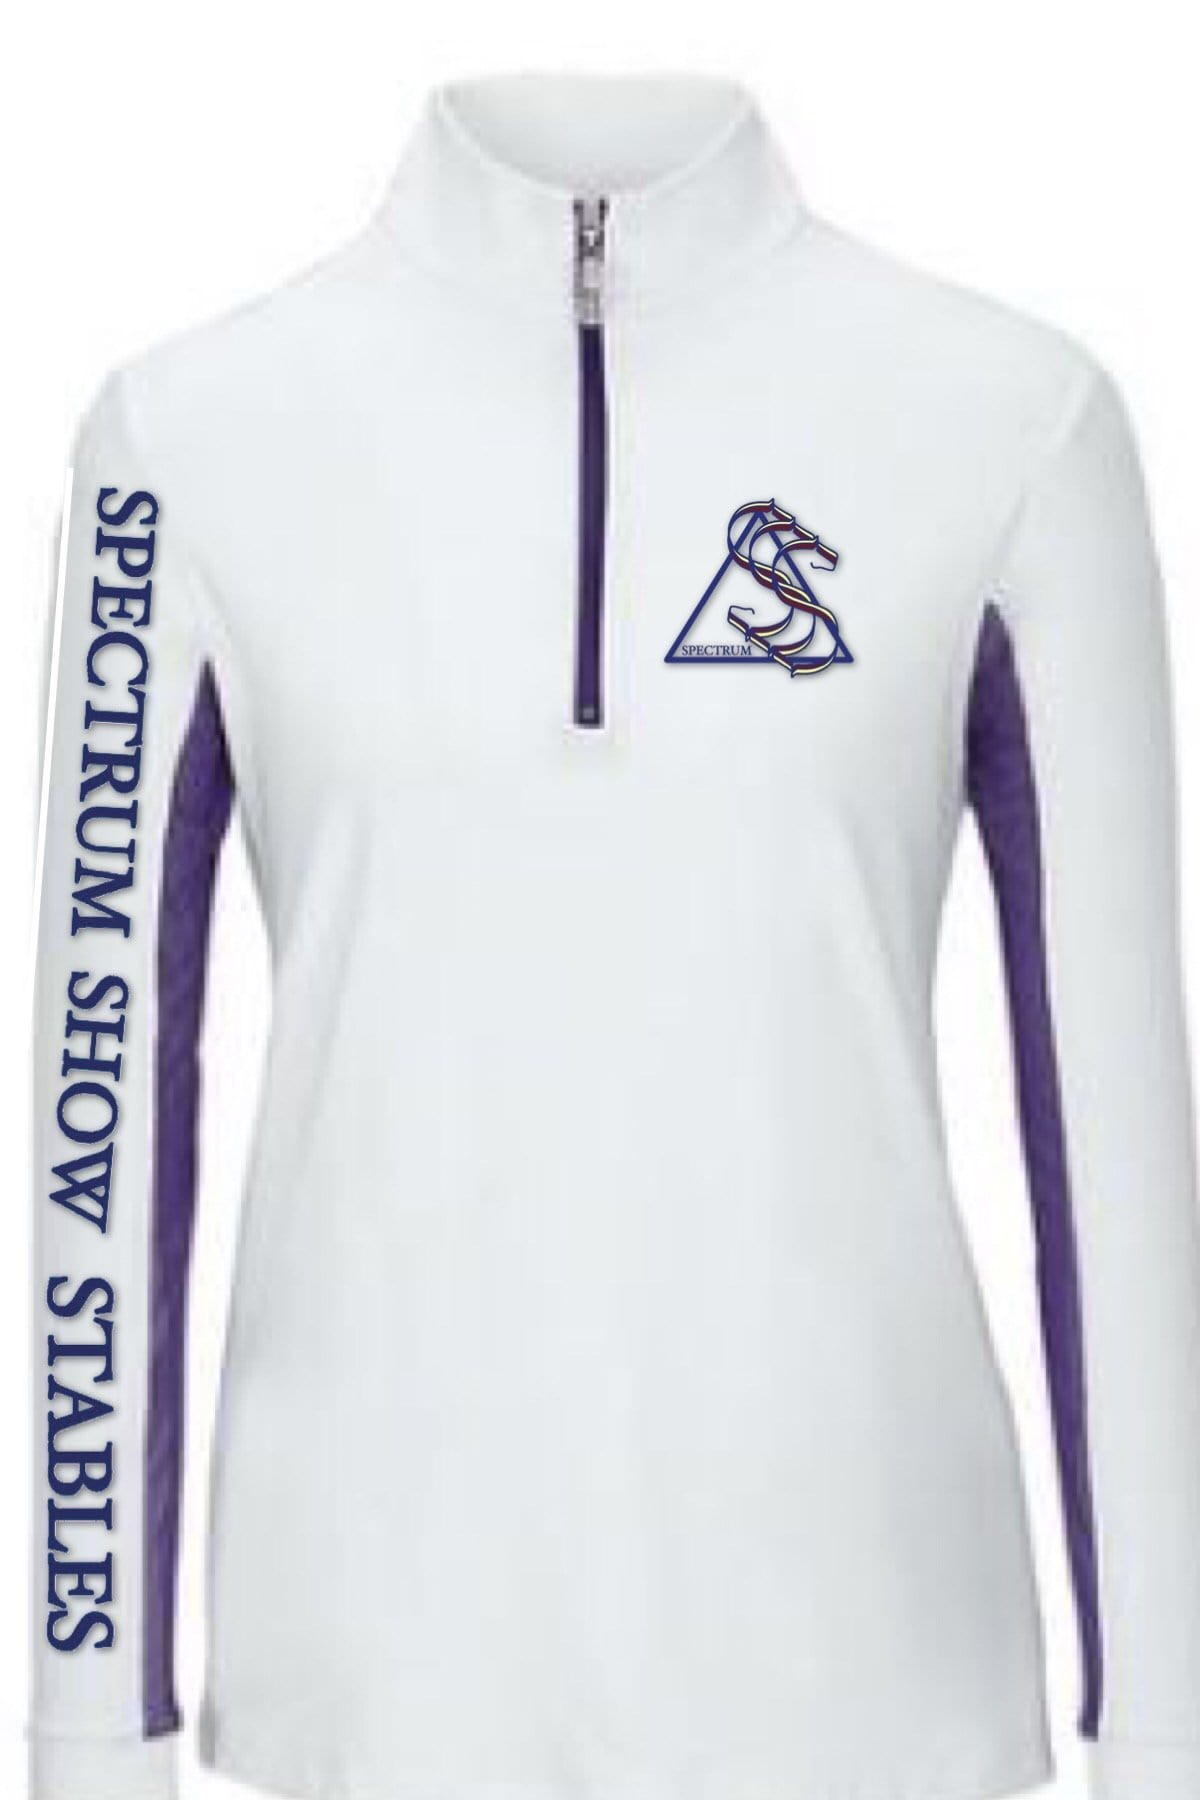 Equestrian Team Apparel Custom Team Shirts XXS Spectrum equestrian team apparel online tack store mobile tack store custom farm apparel custom show stable clothing equestrian lifestyle horse show clothing riding clothes horses equestrian tack store